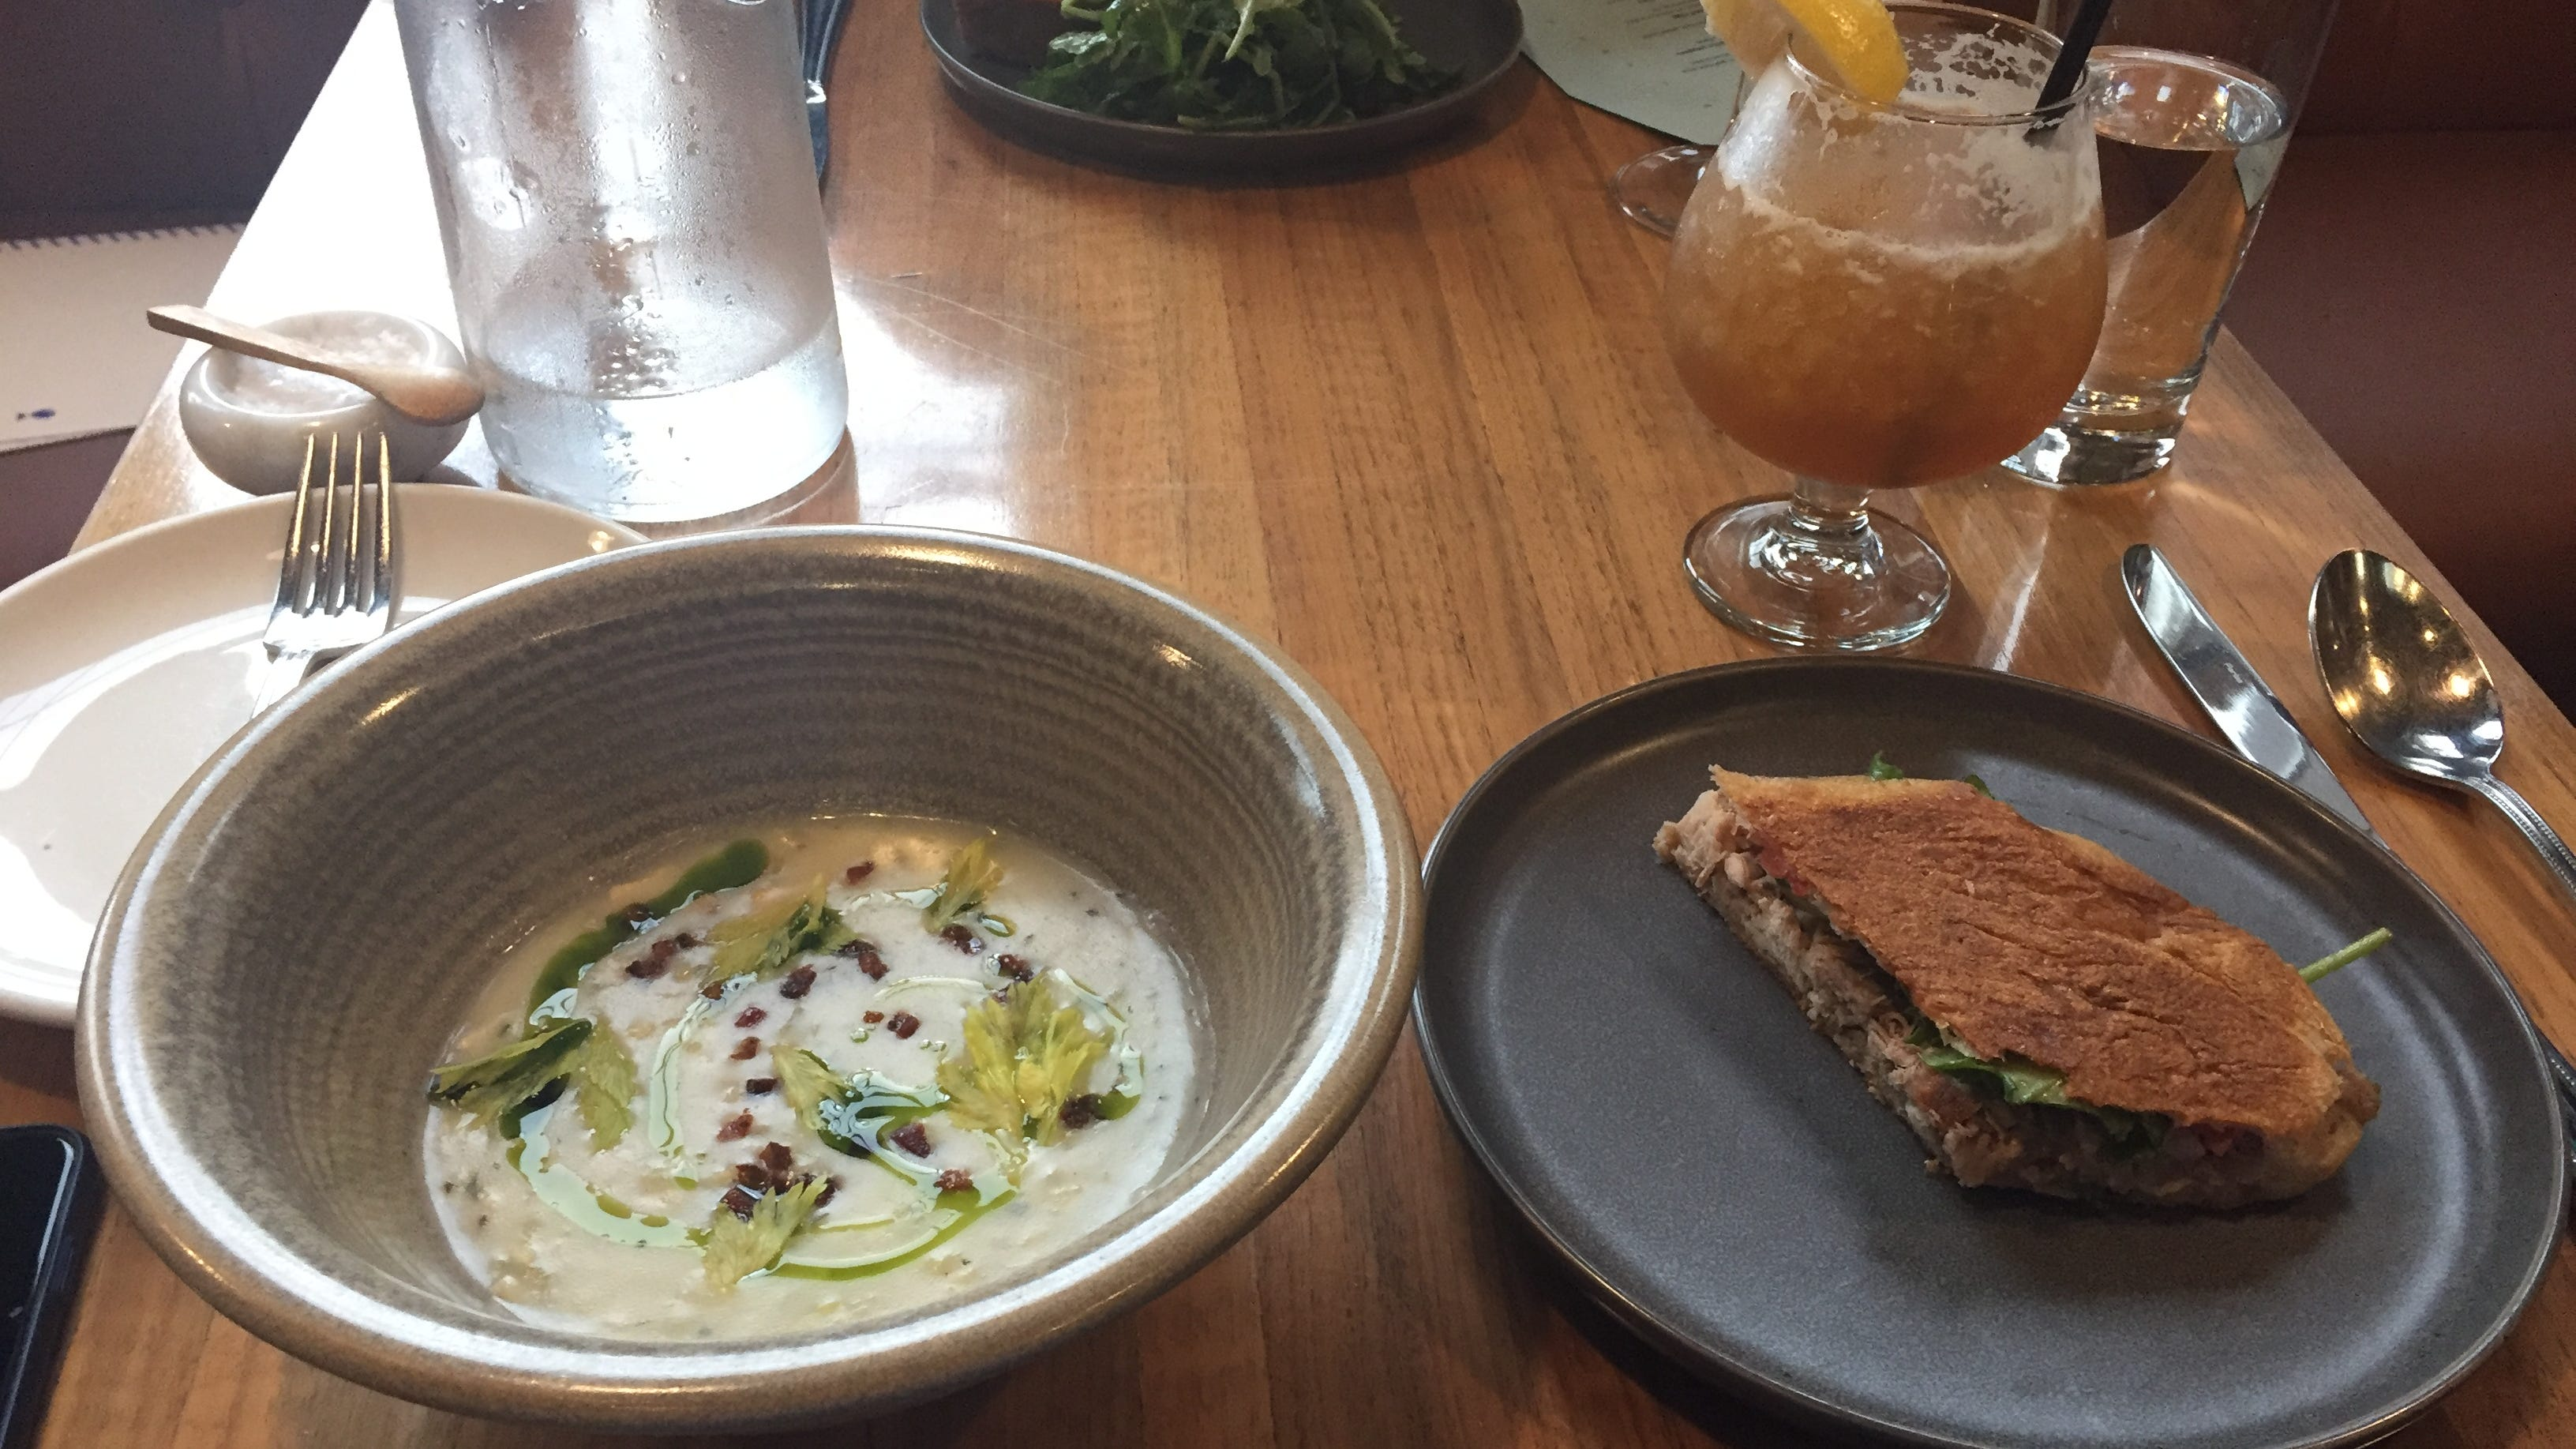 How to improve a workday: a relaxed lunch at 8th and English